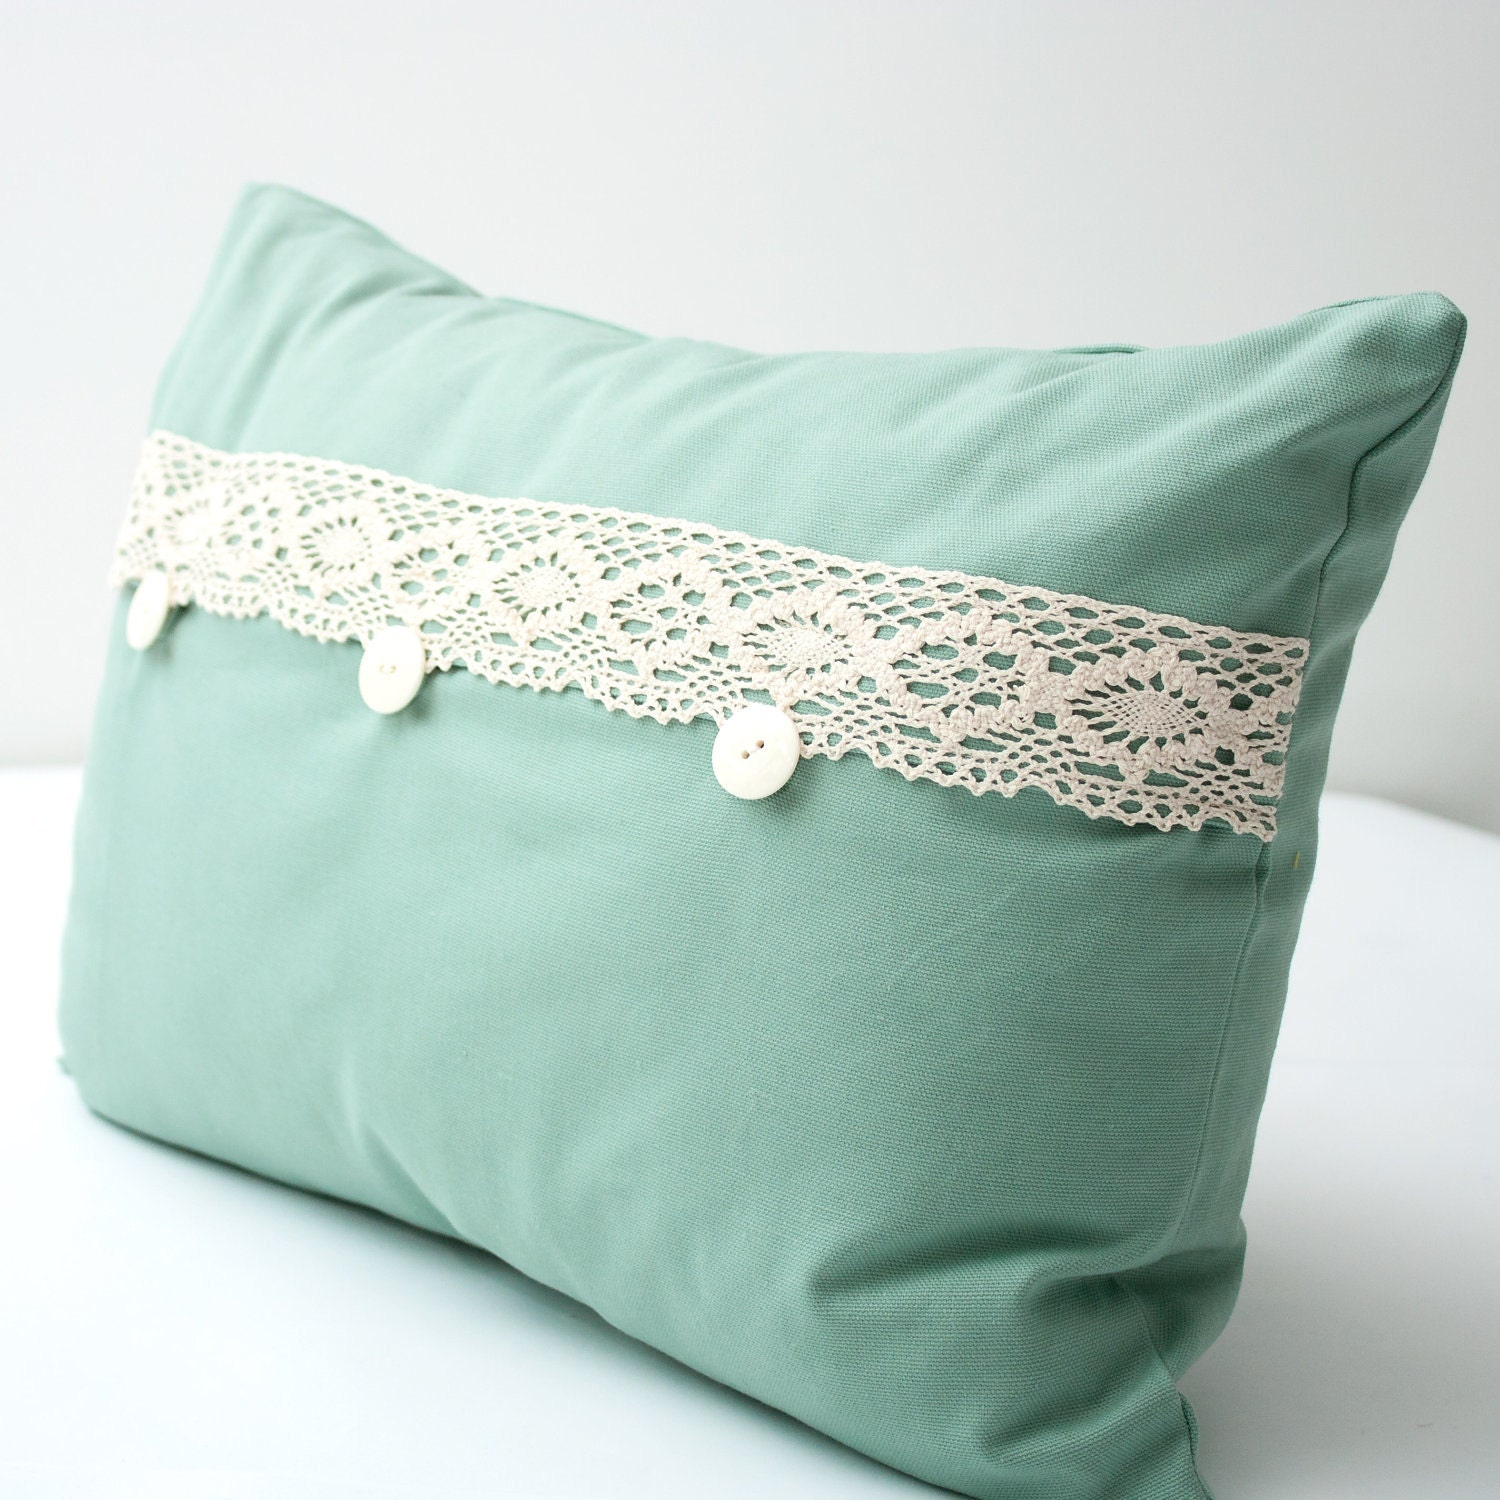 Decorative Pillows With Teal : Teal and Lace Decorative Lumbar Pillow Cover by alexisandradesign